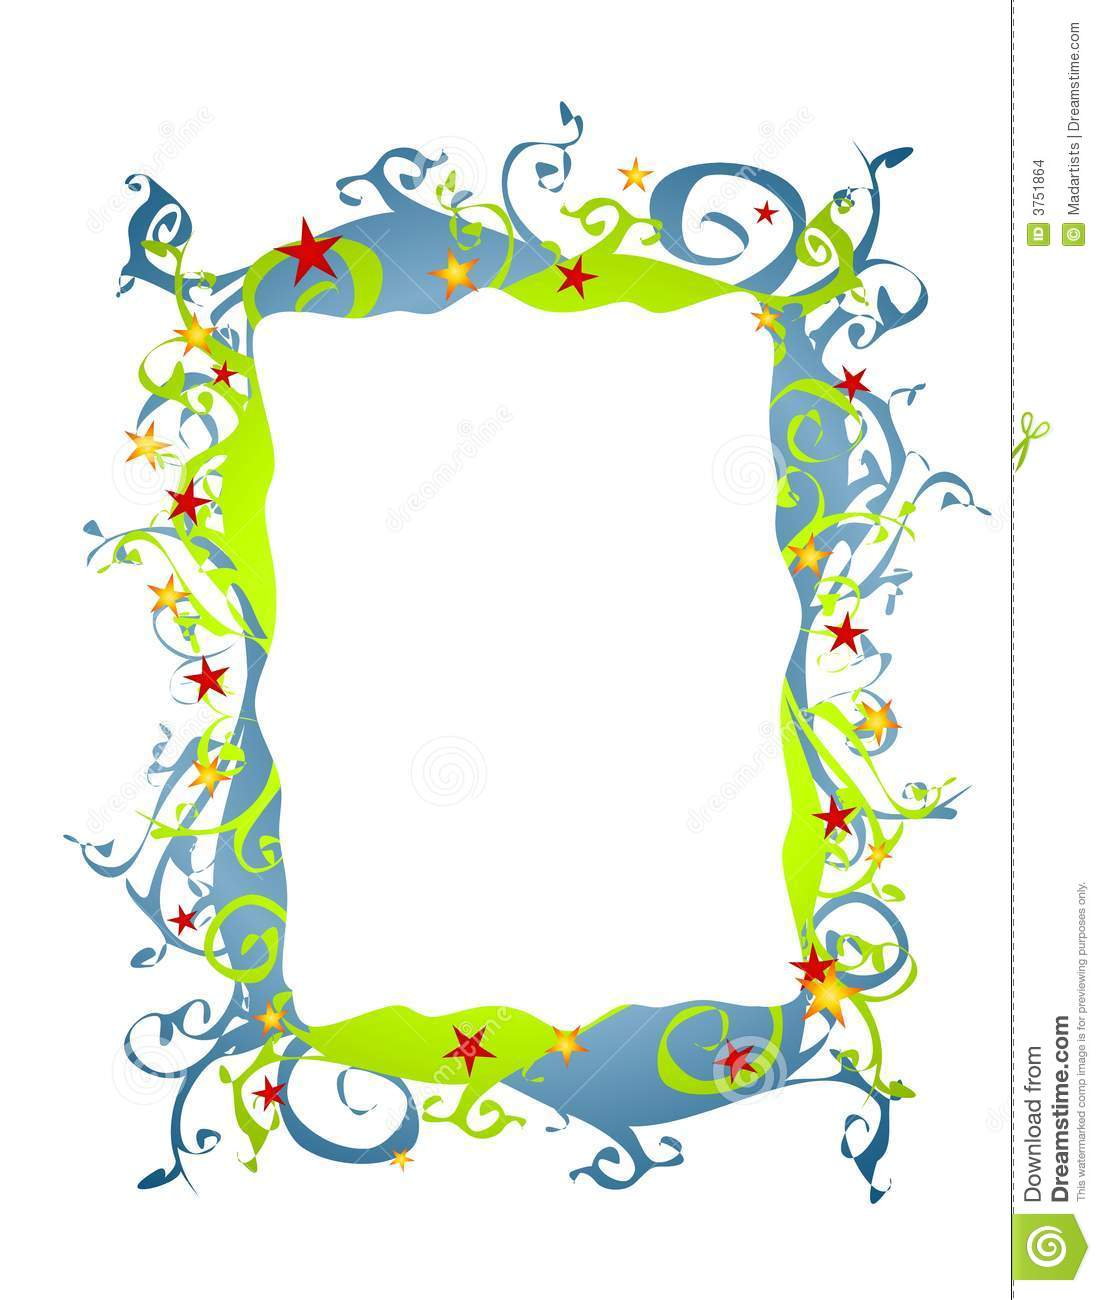 clip art illustration featuring a decorative folksy abstract border ...